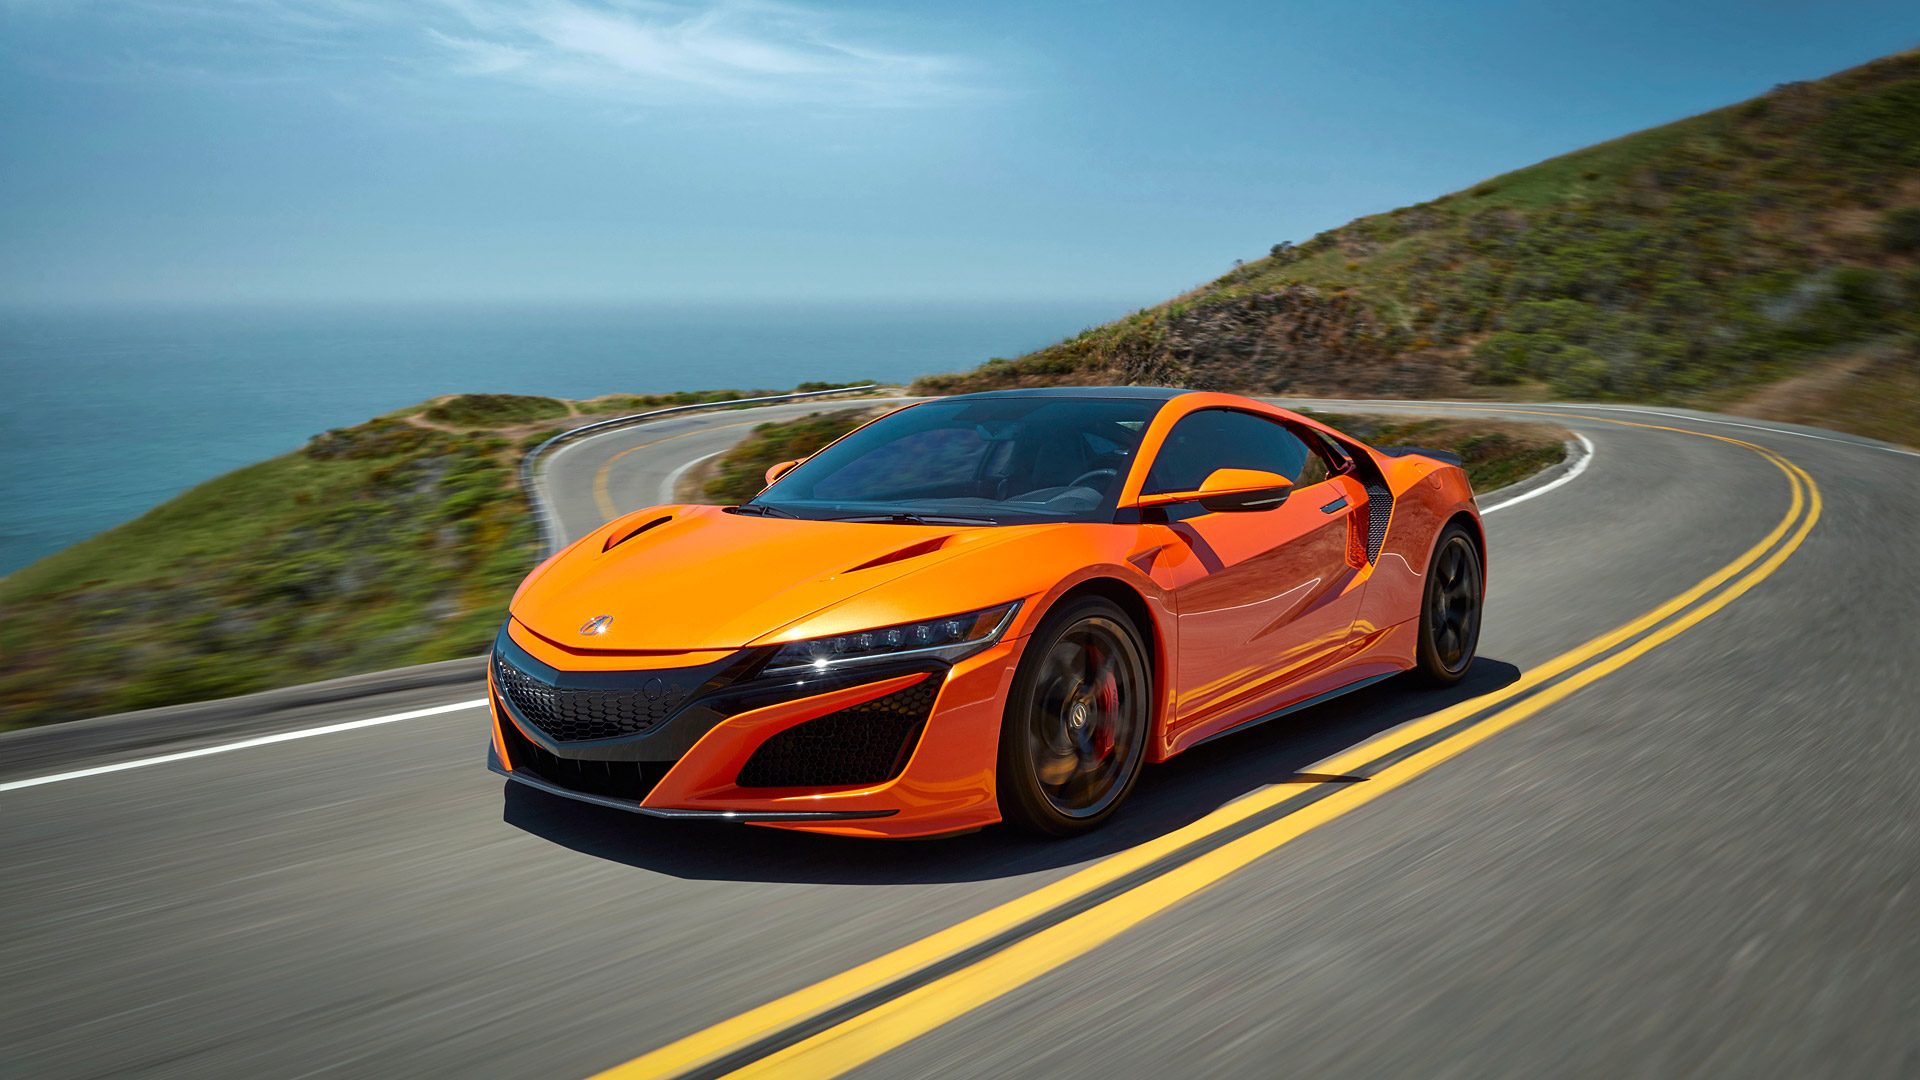 Acura NSX Wallpapers - Top Free Acura NSX Backgrounds